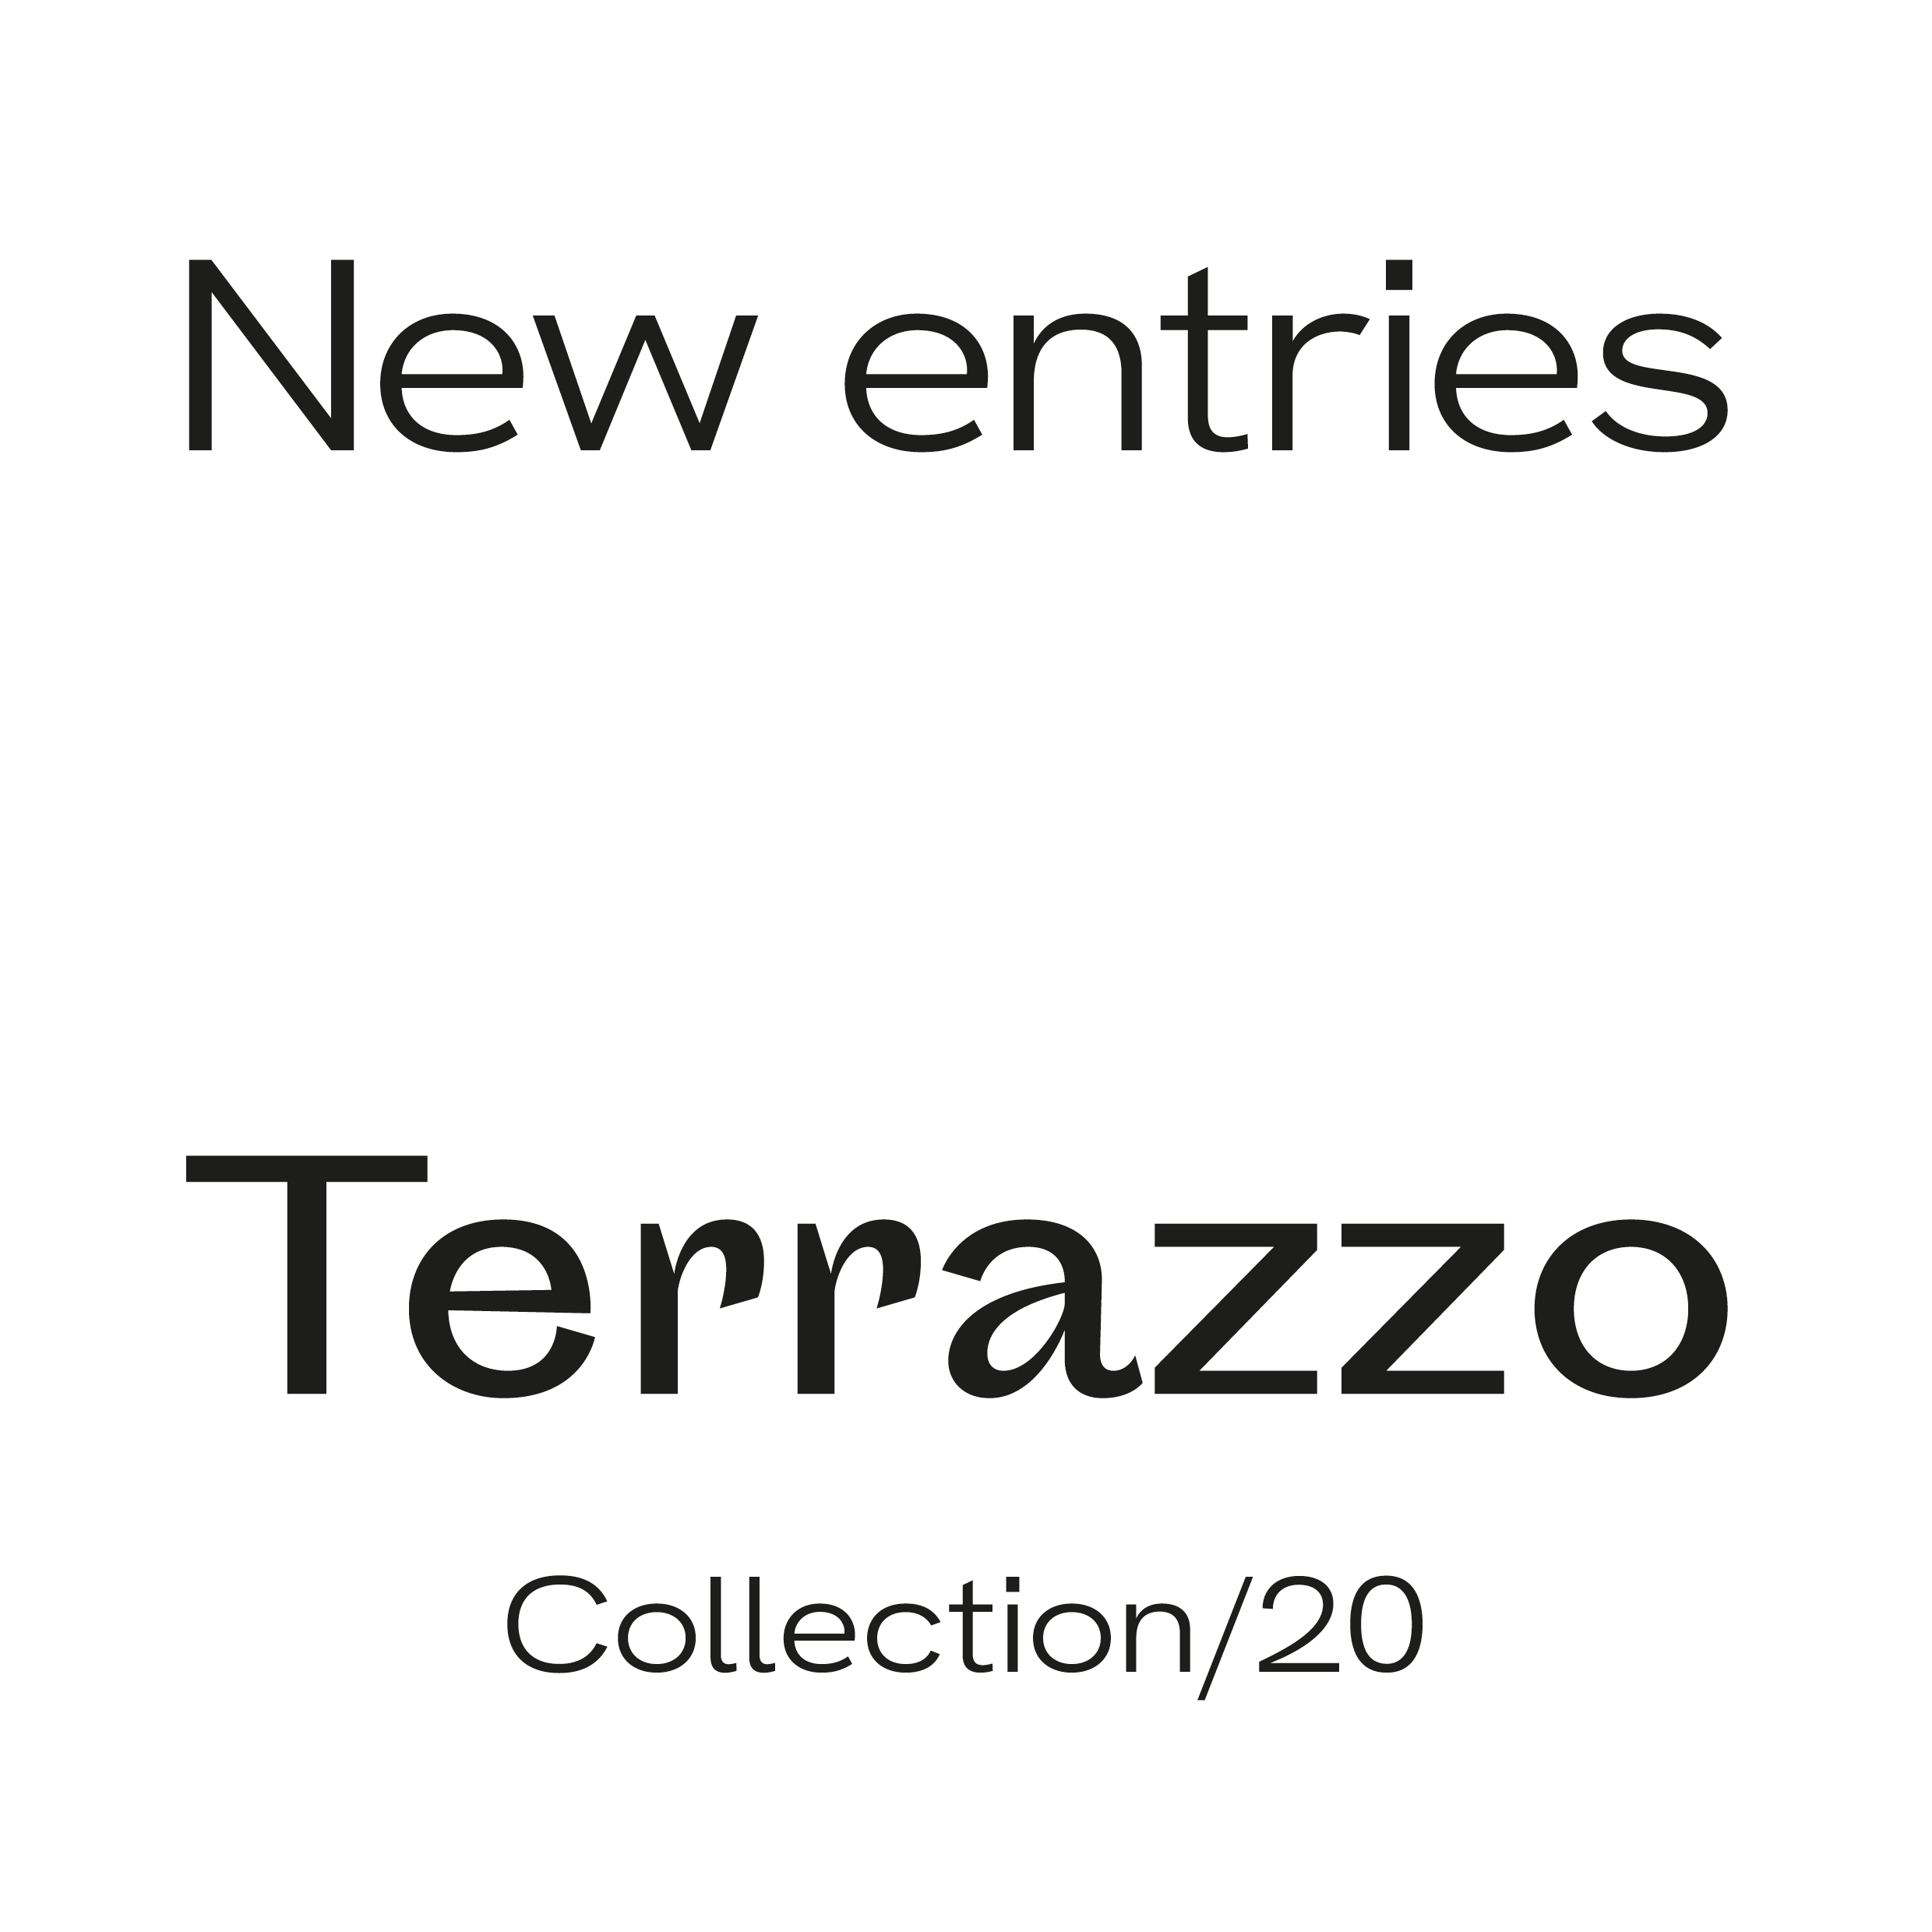 New entries TERRAZZO Collection/20